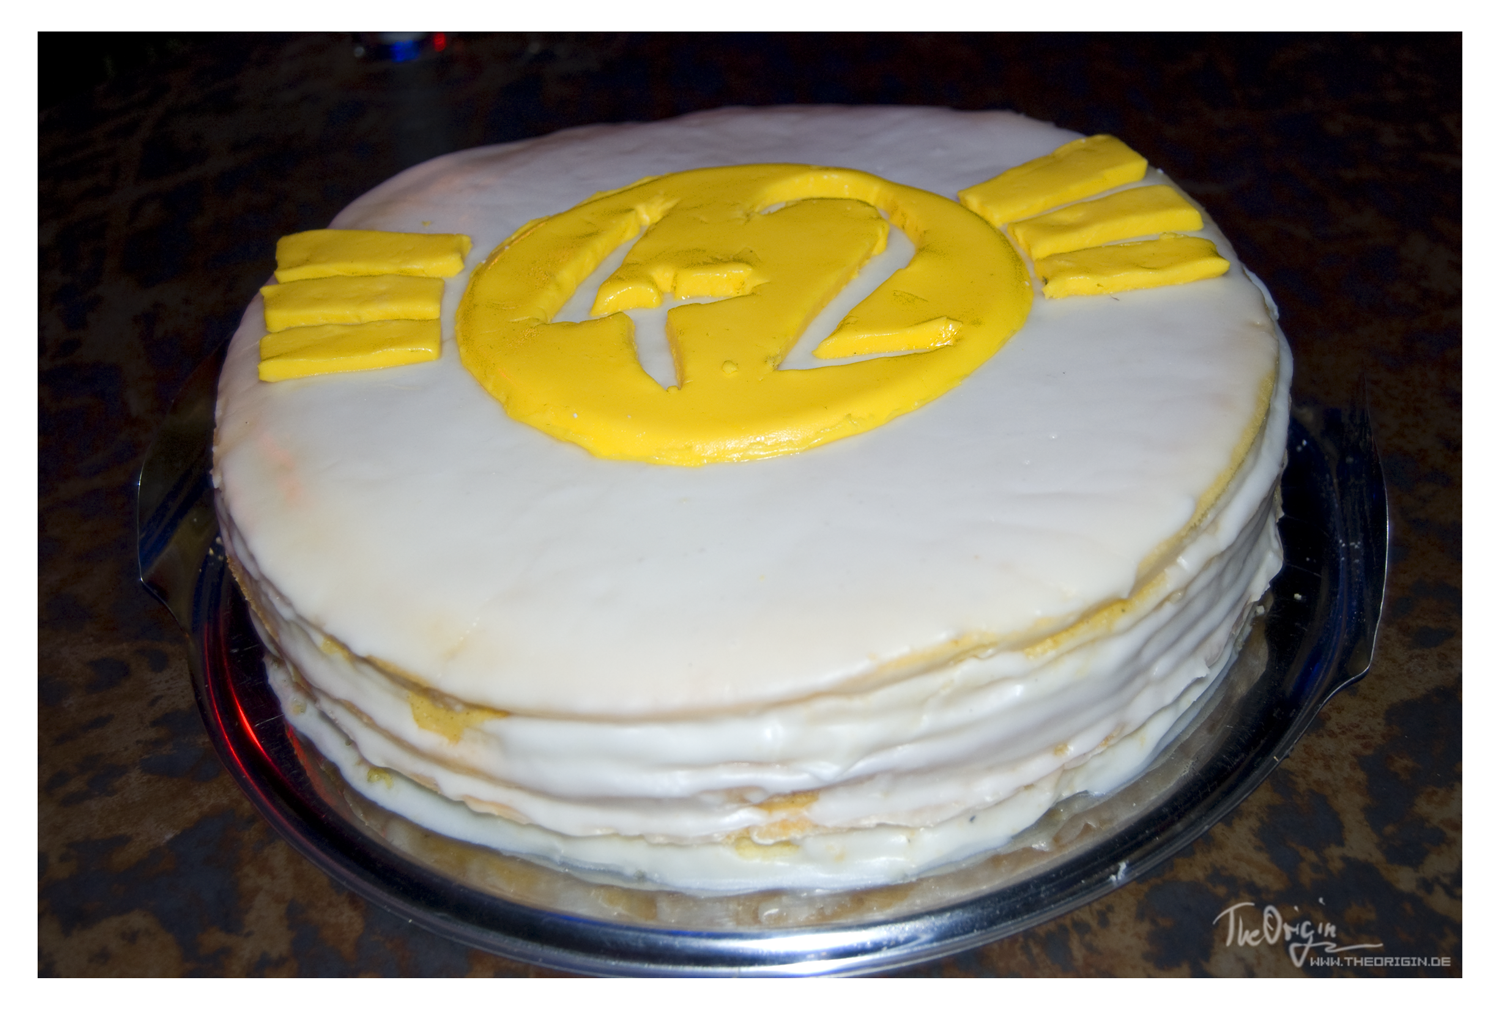 The 42 Cake.png